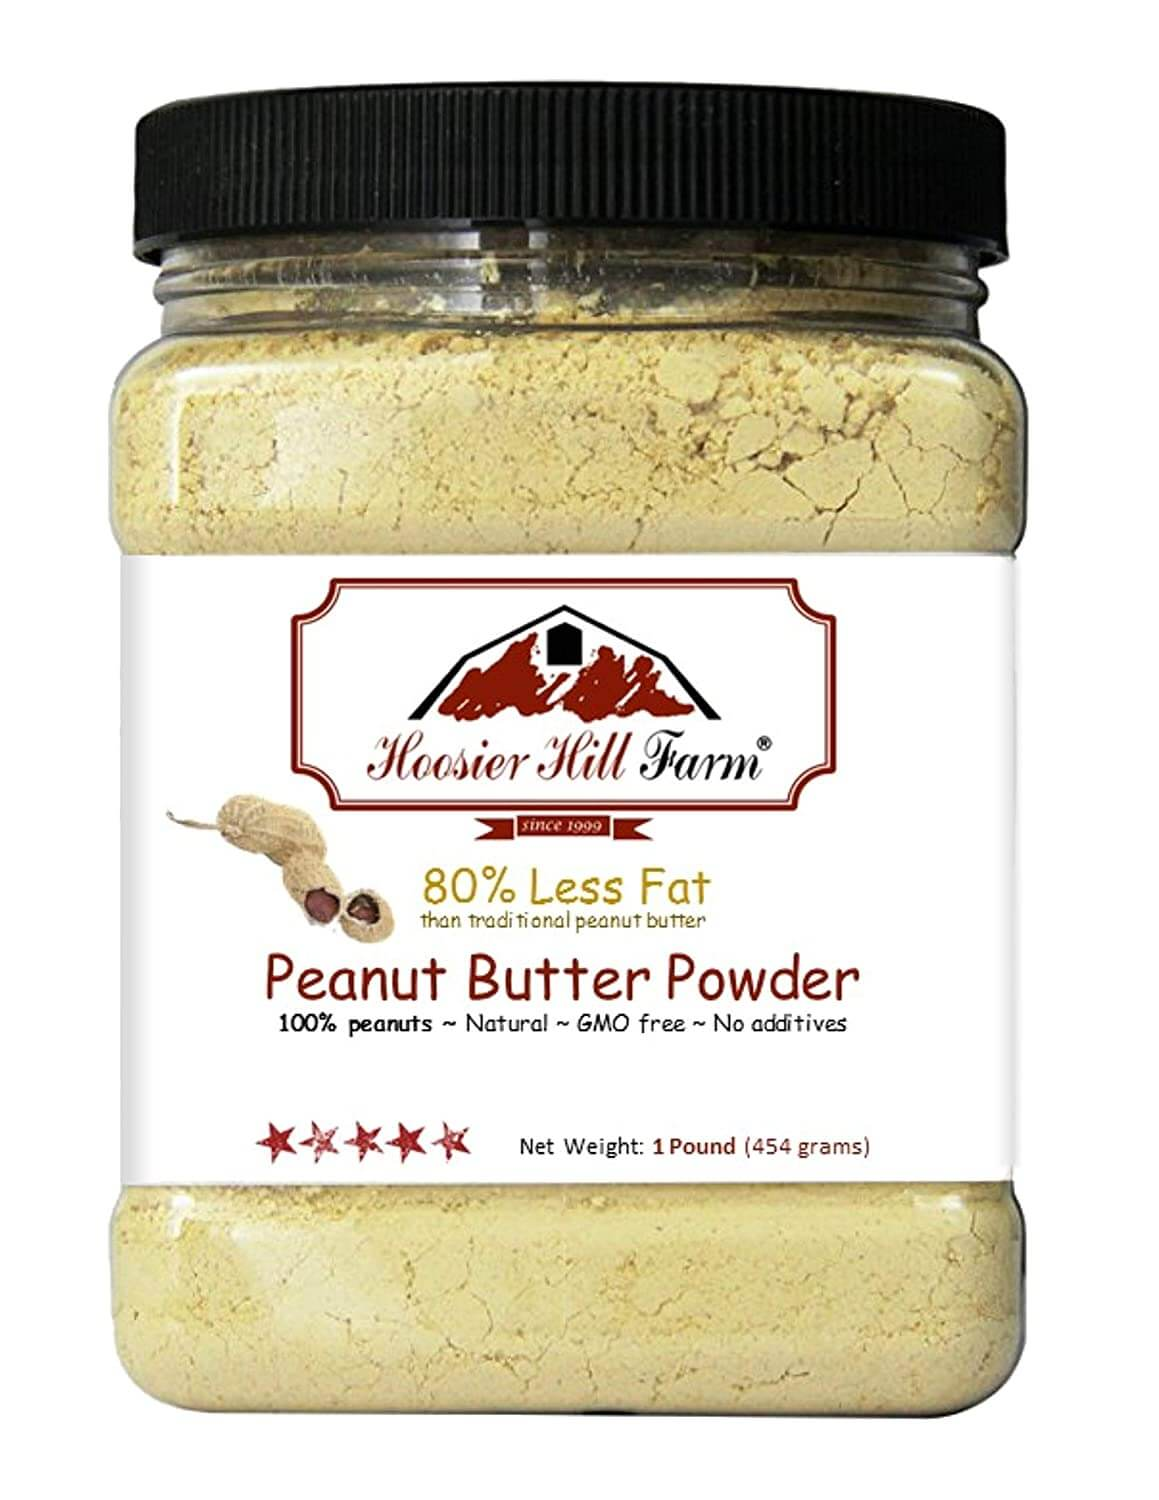 Peanut Butter Powder by Hoosier Hill Farm